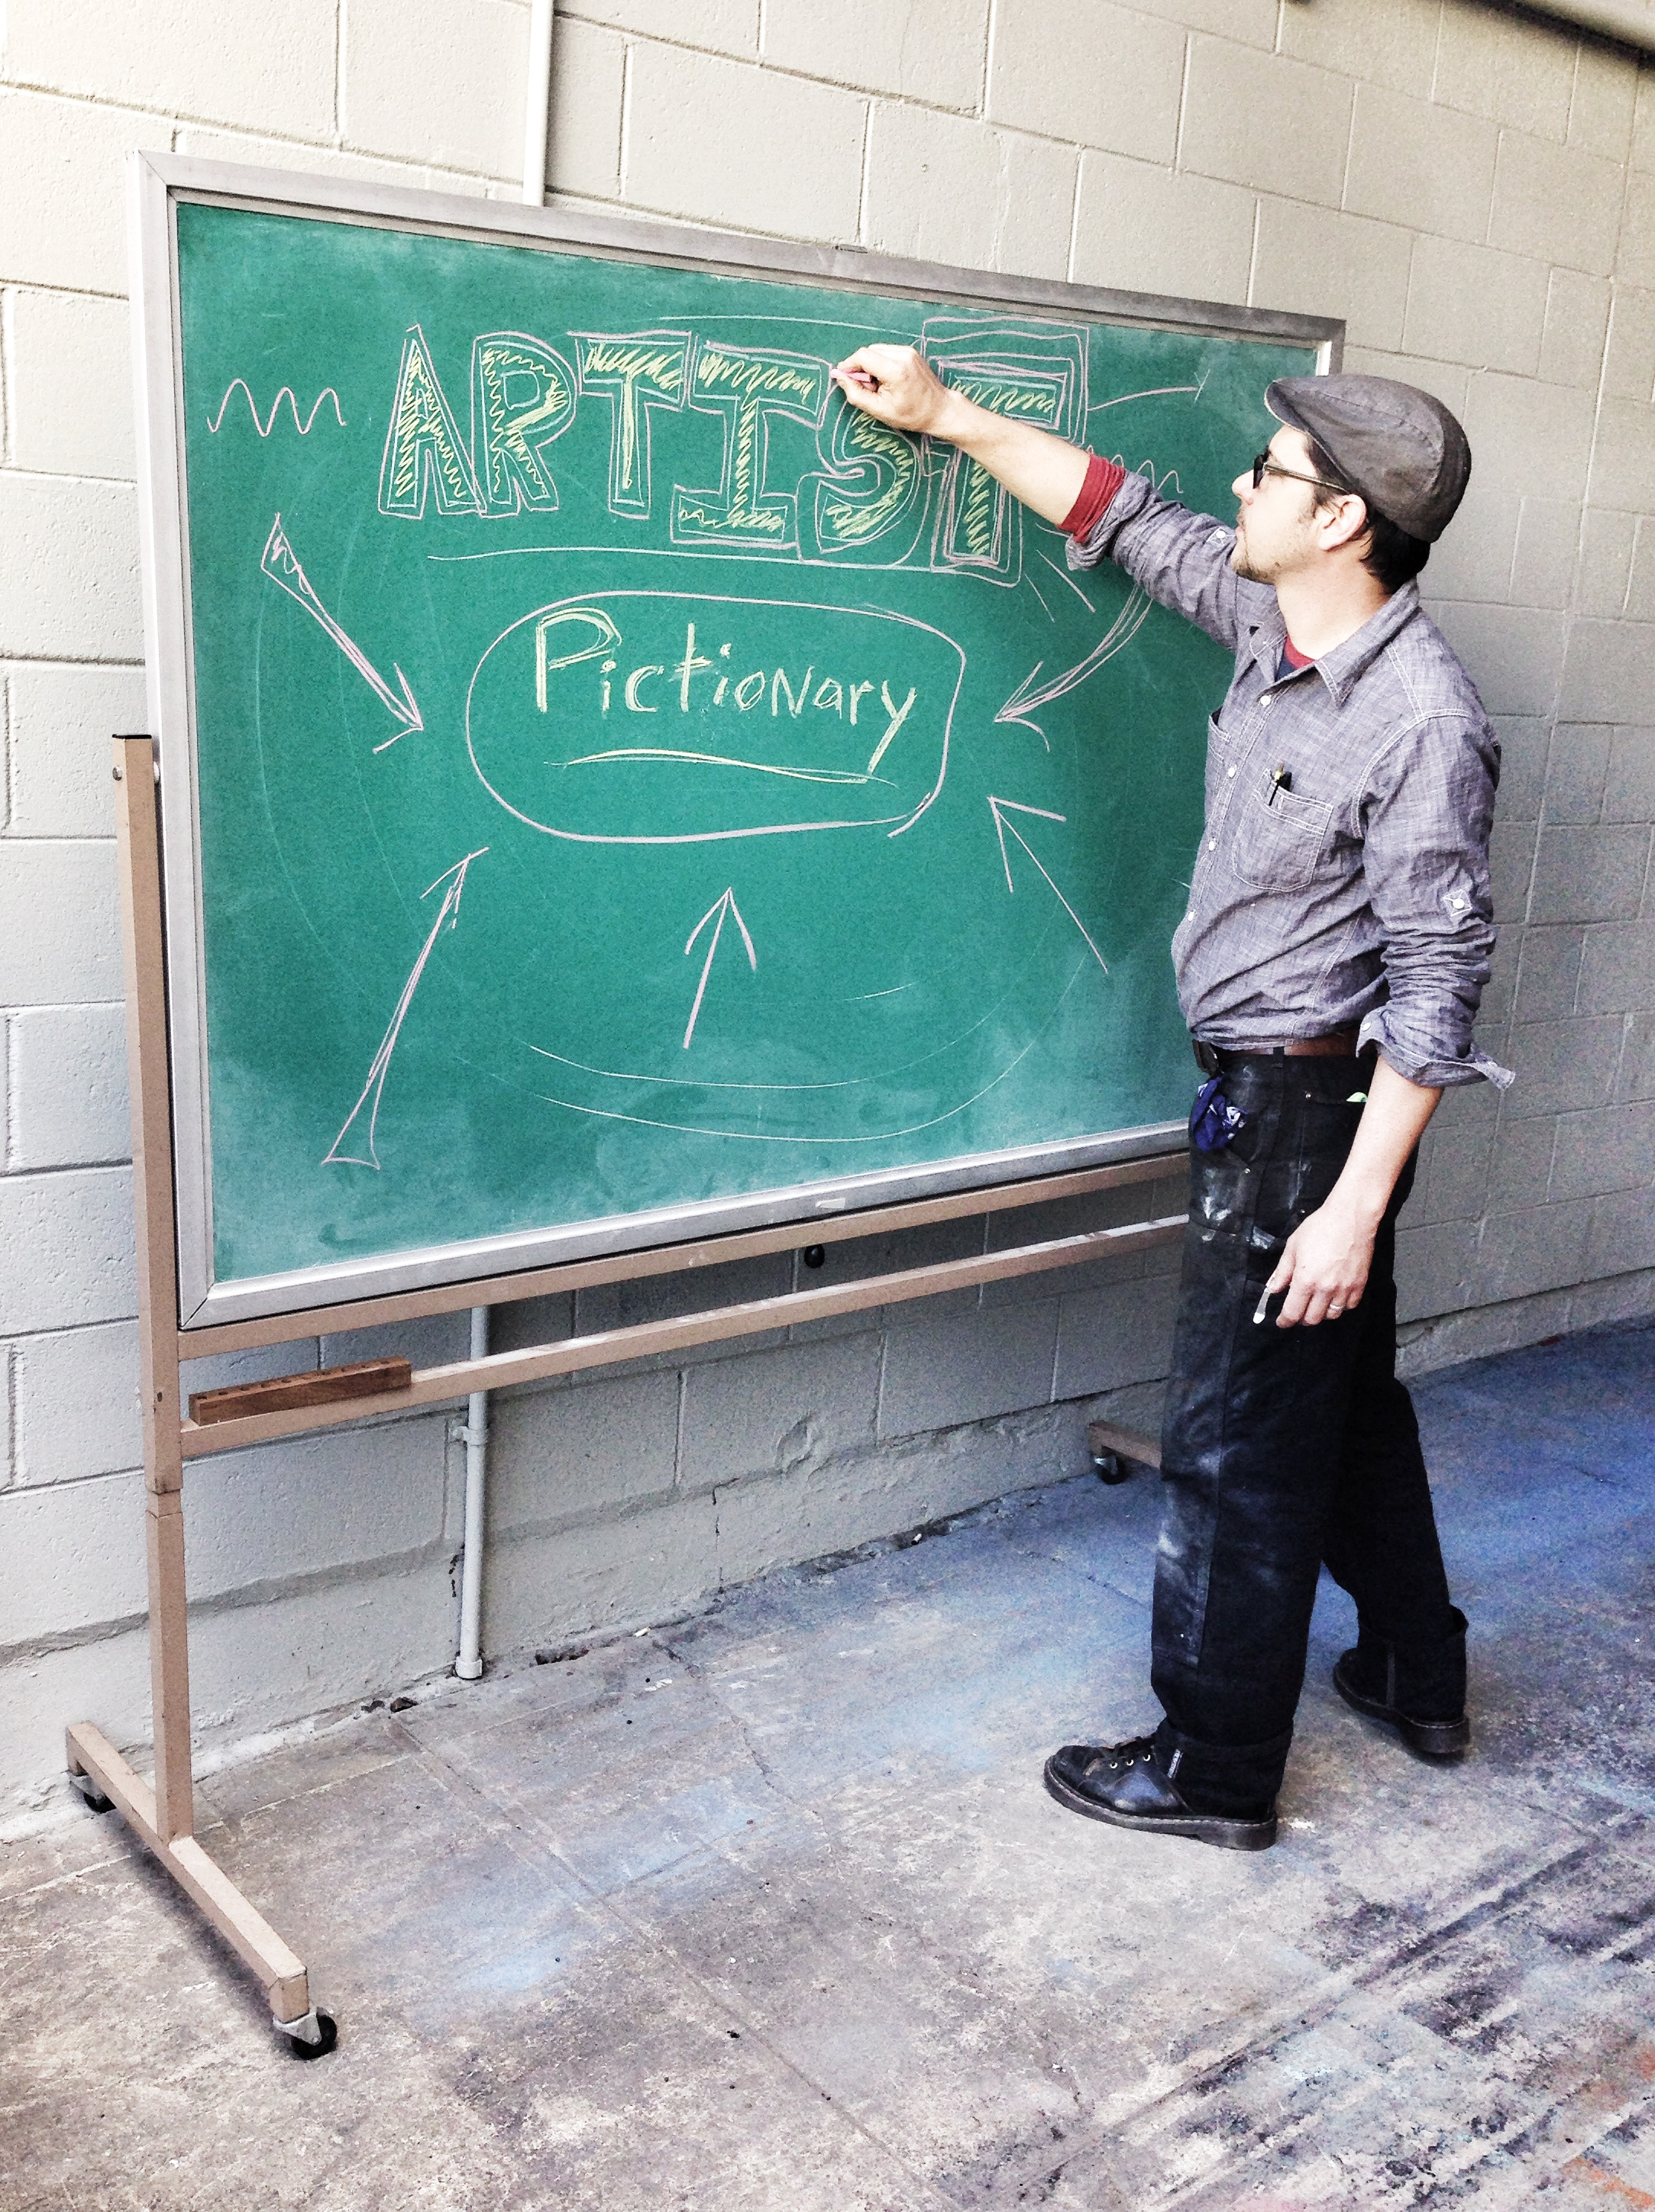 Artist Pictionary